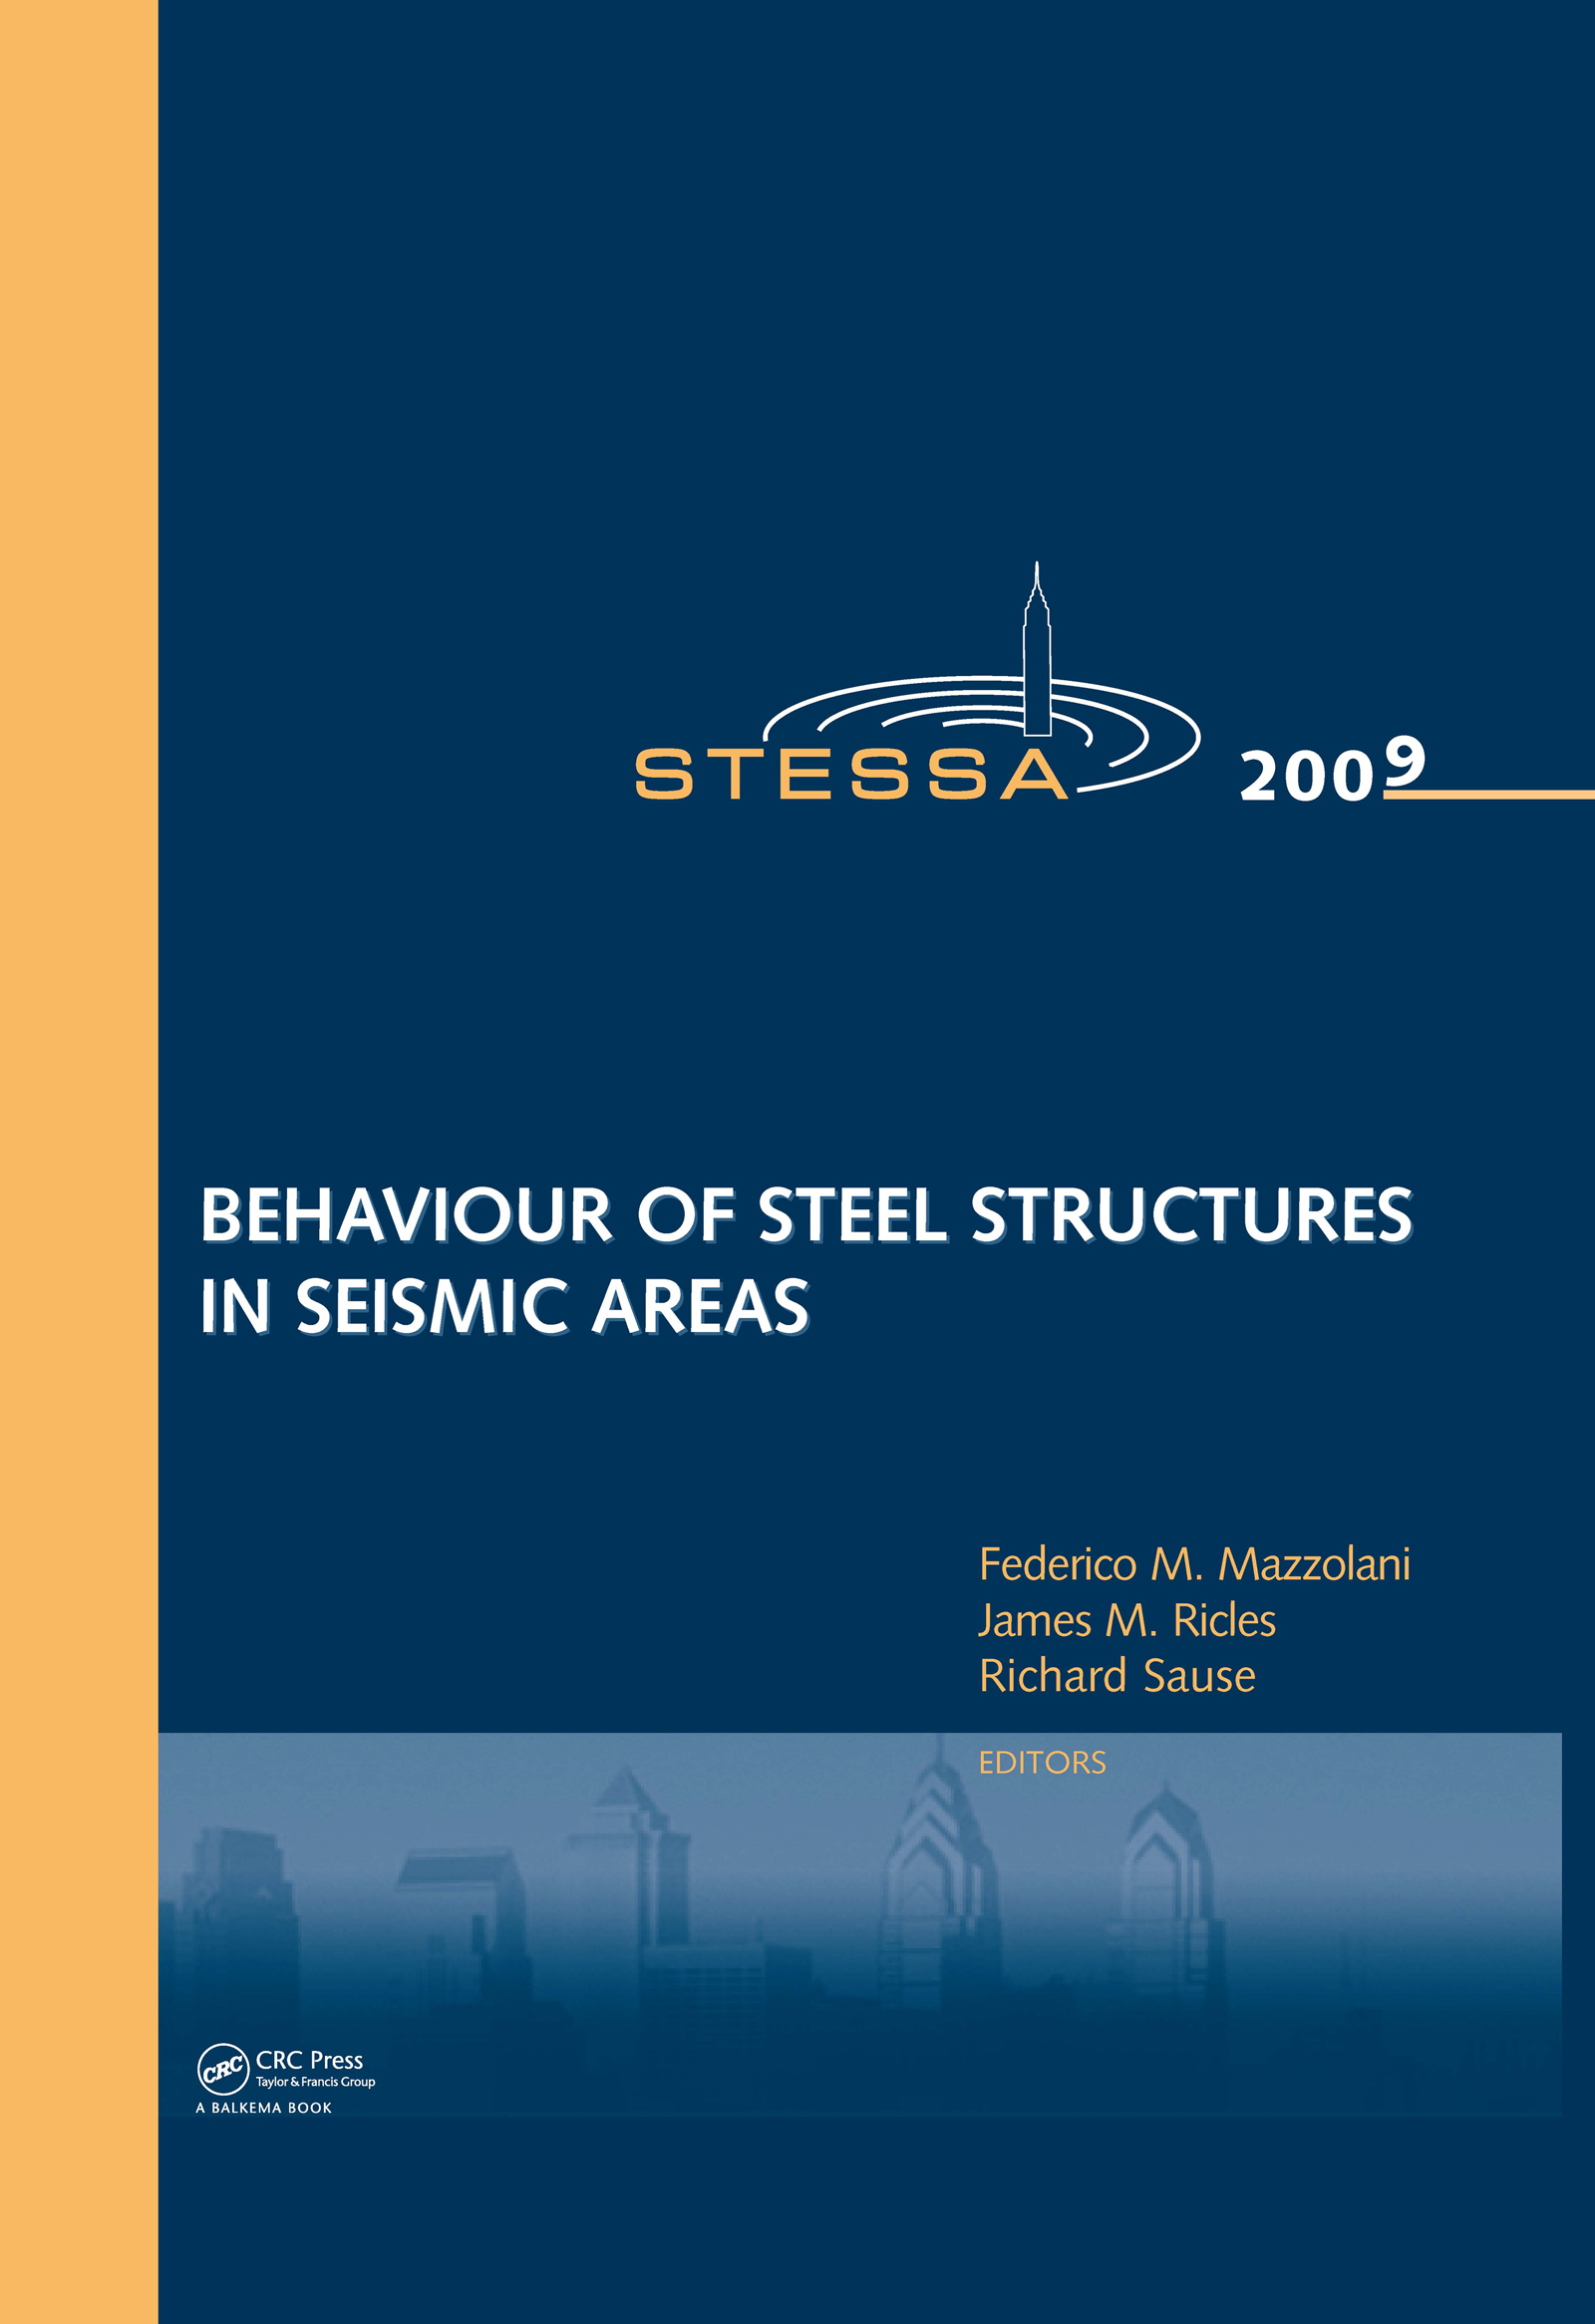 Behaviour of Steel Structures in Seismic Areas: STESSA 2009, 1st Edition (Pack - Book and CD) book cover